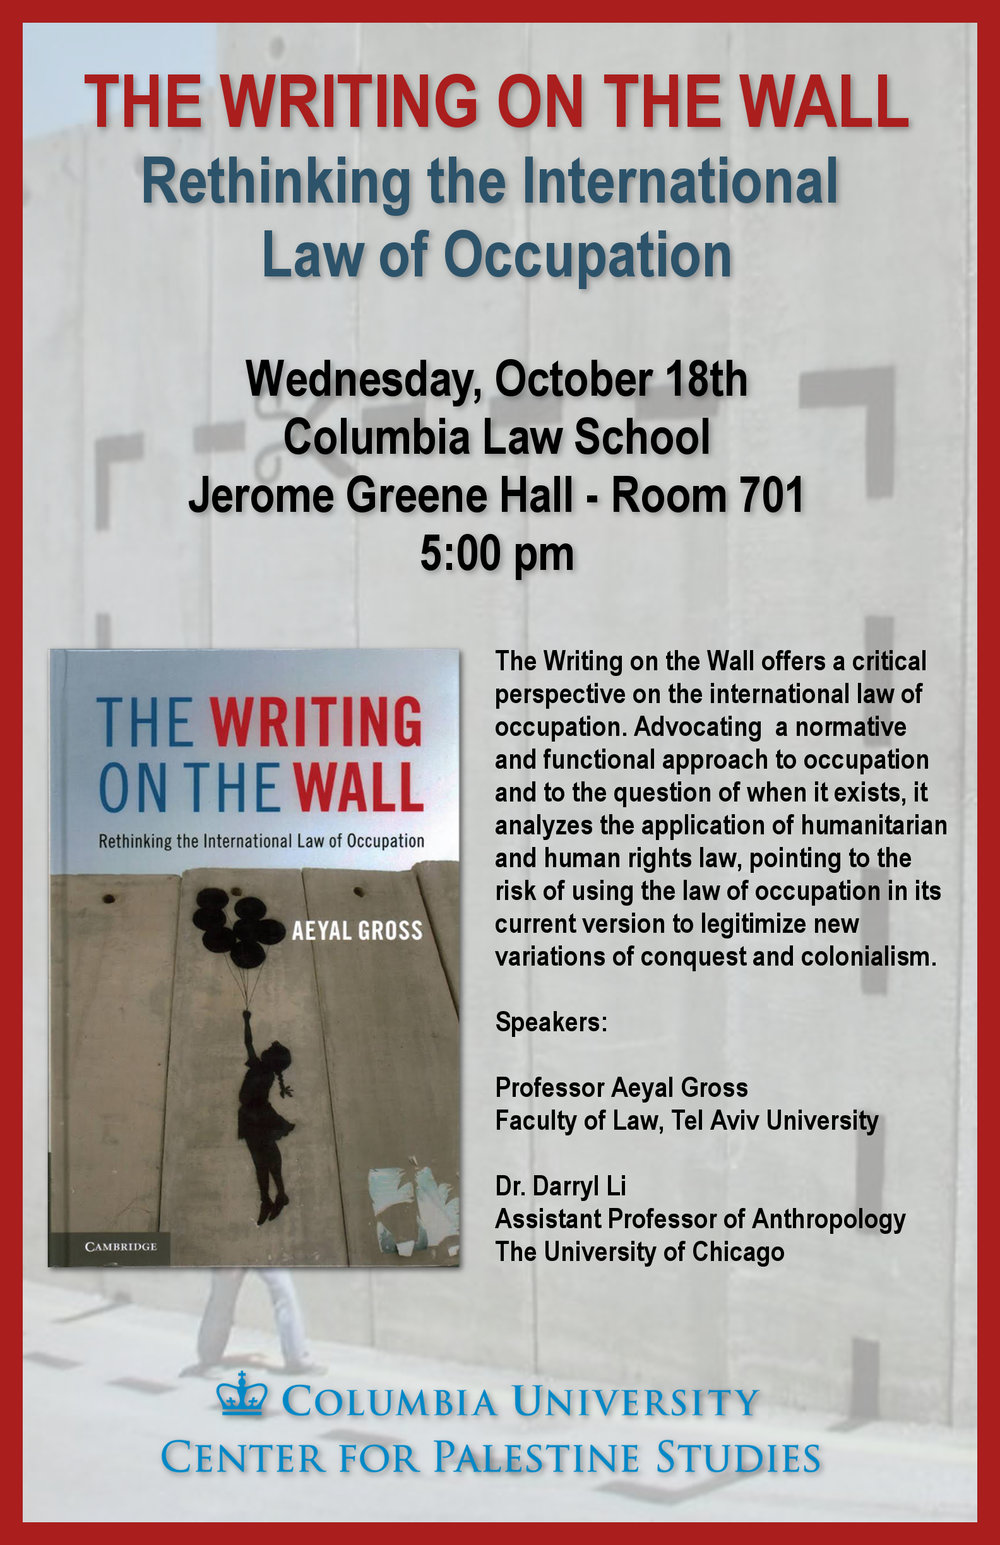 The Writing on the Wall - Rethinking the International Law of OccupationWed. October 18, 5:00 pm